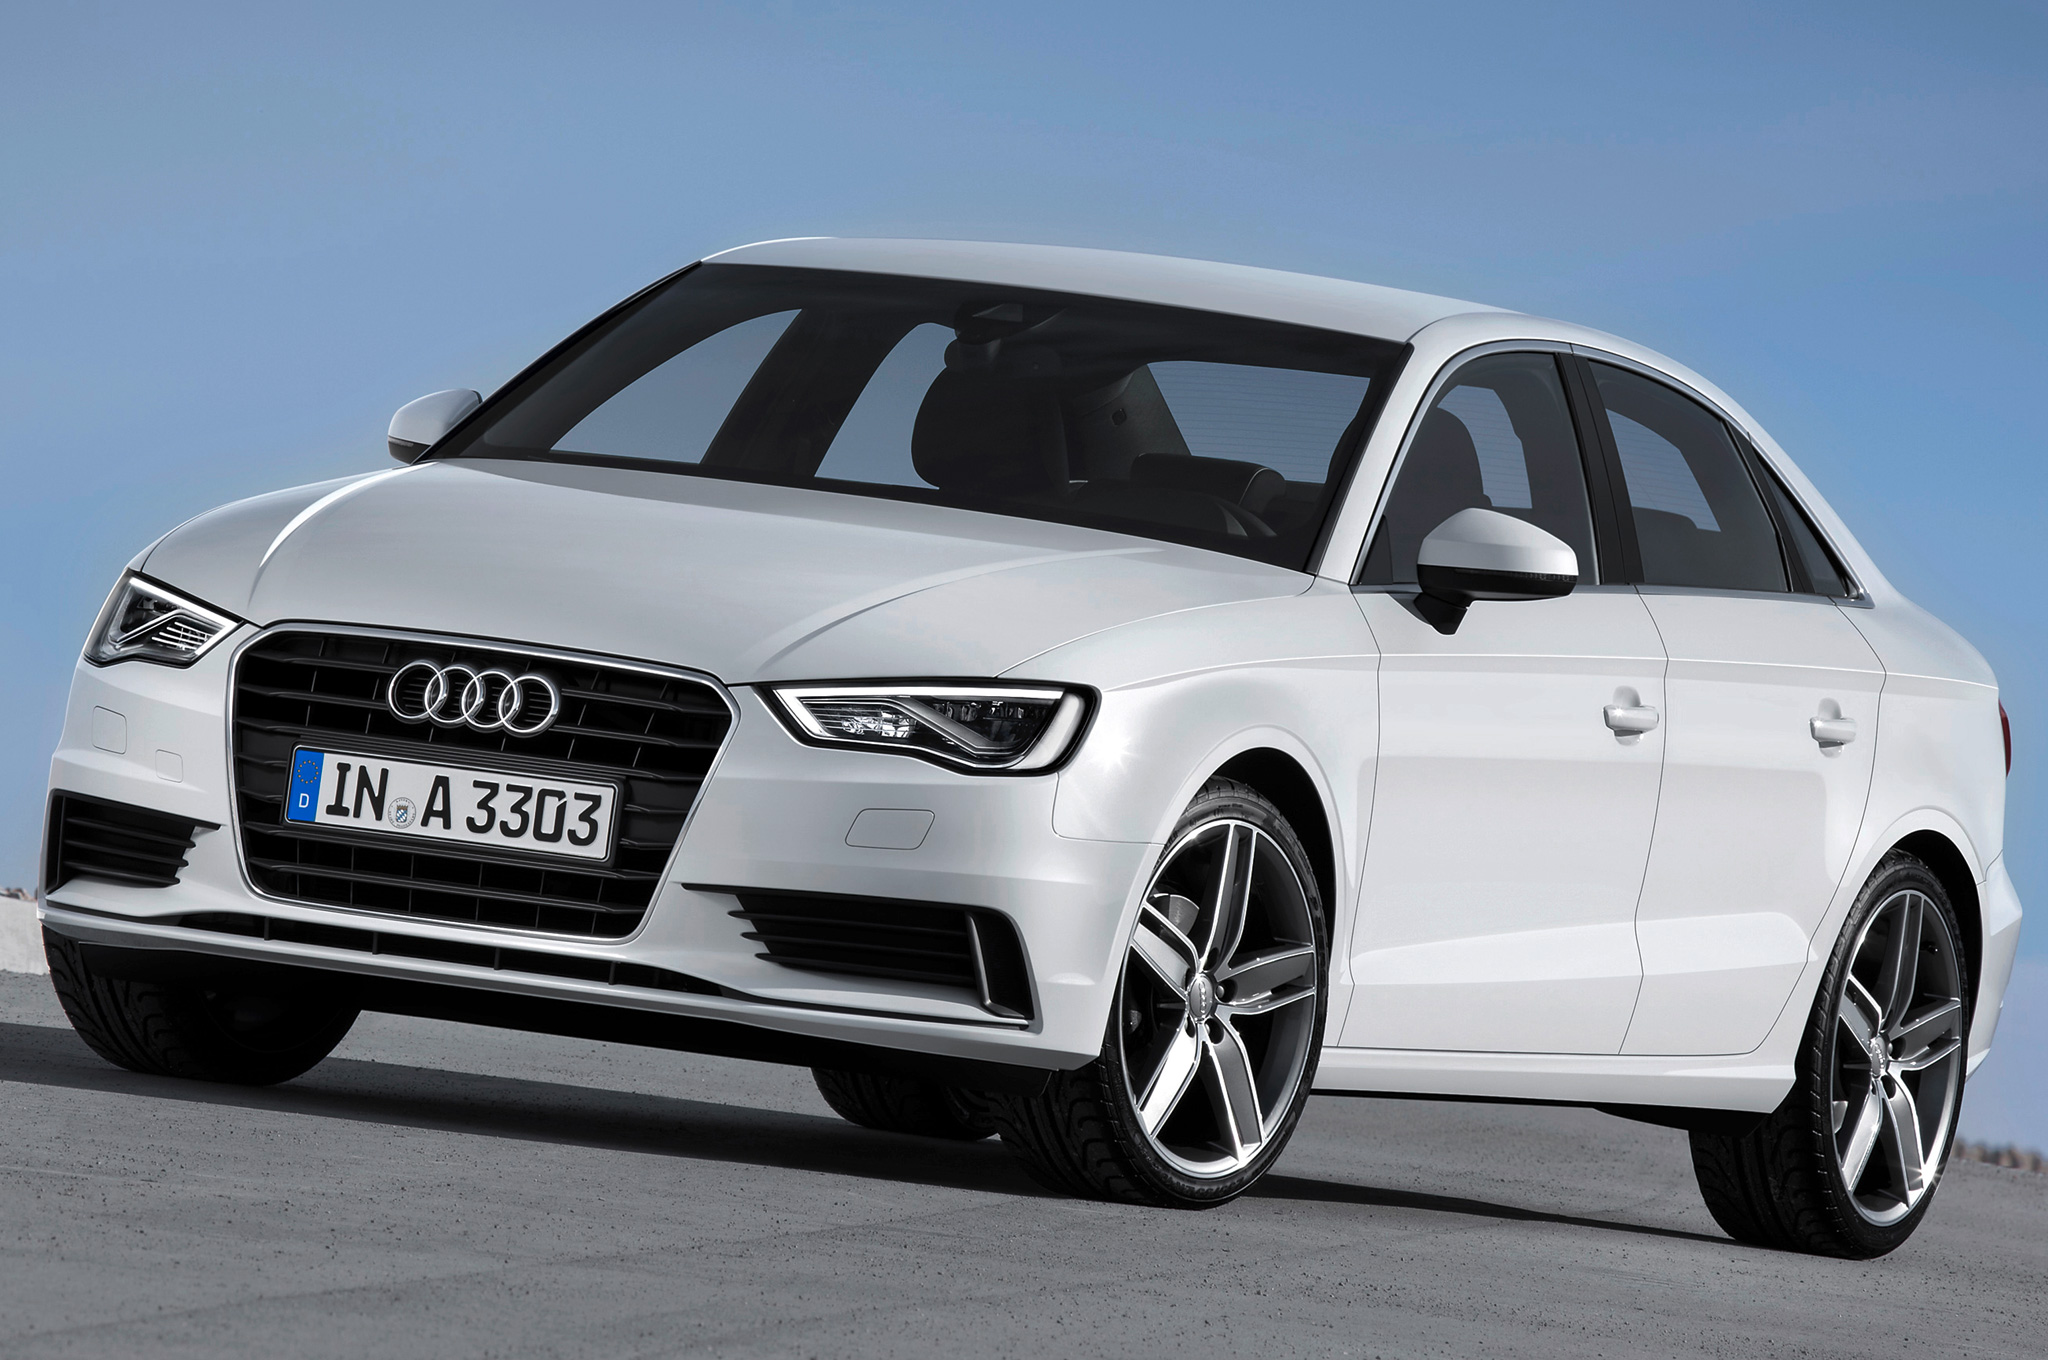 TOTD: Pricing Showdown -- Audi A3 or Mercedes-Benz CLA?